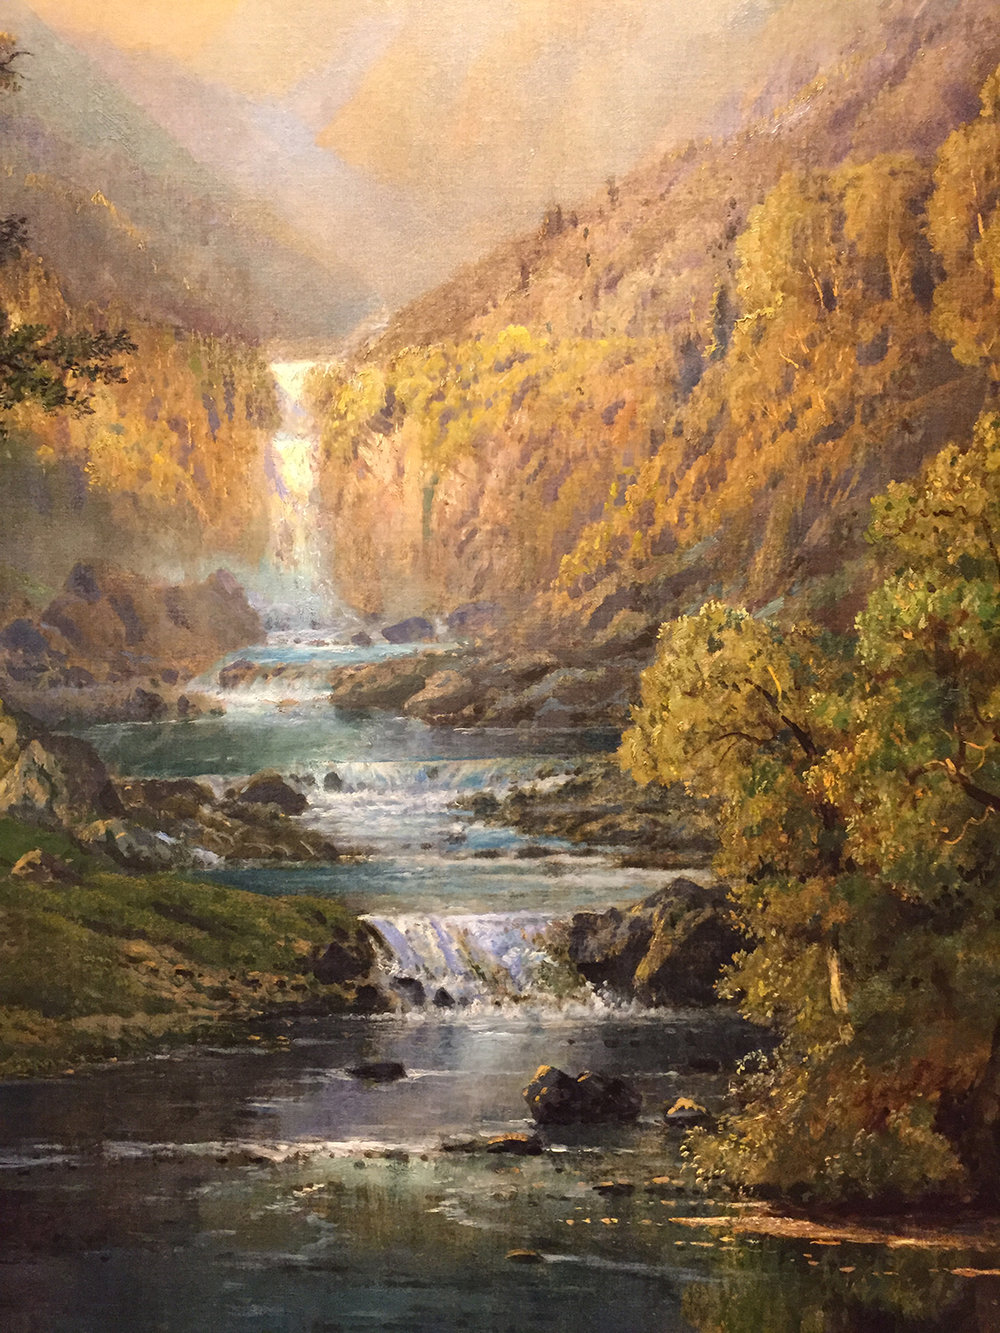 Morning in the Kaaterskill, by Edmund Darch Lewis